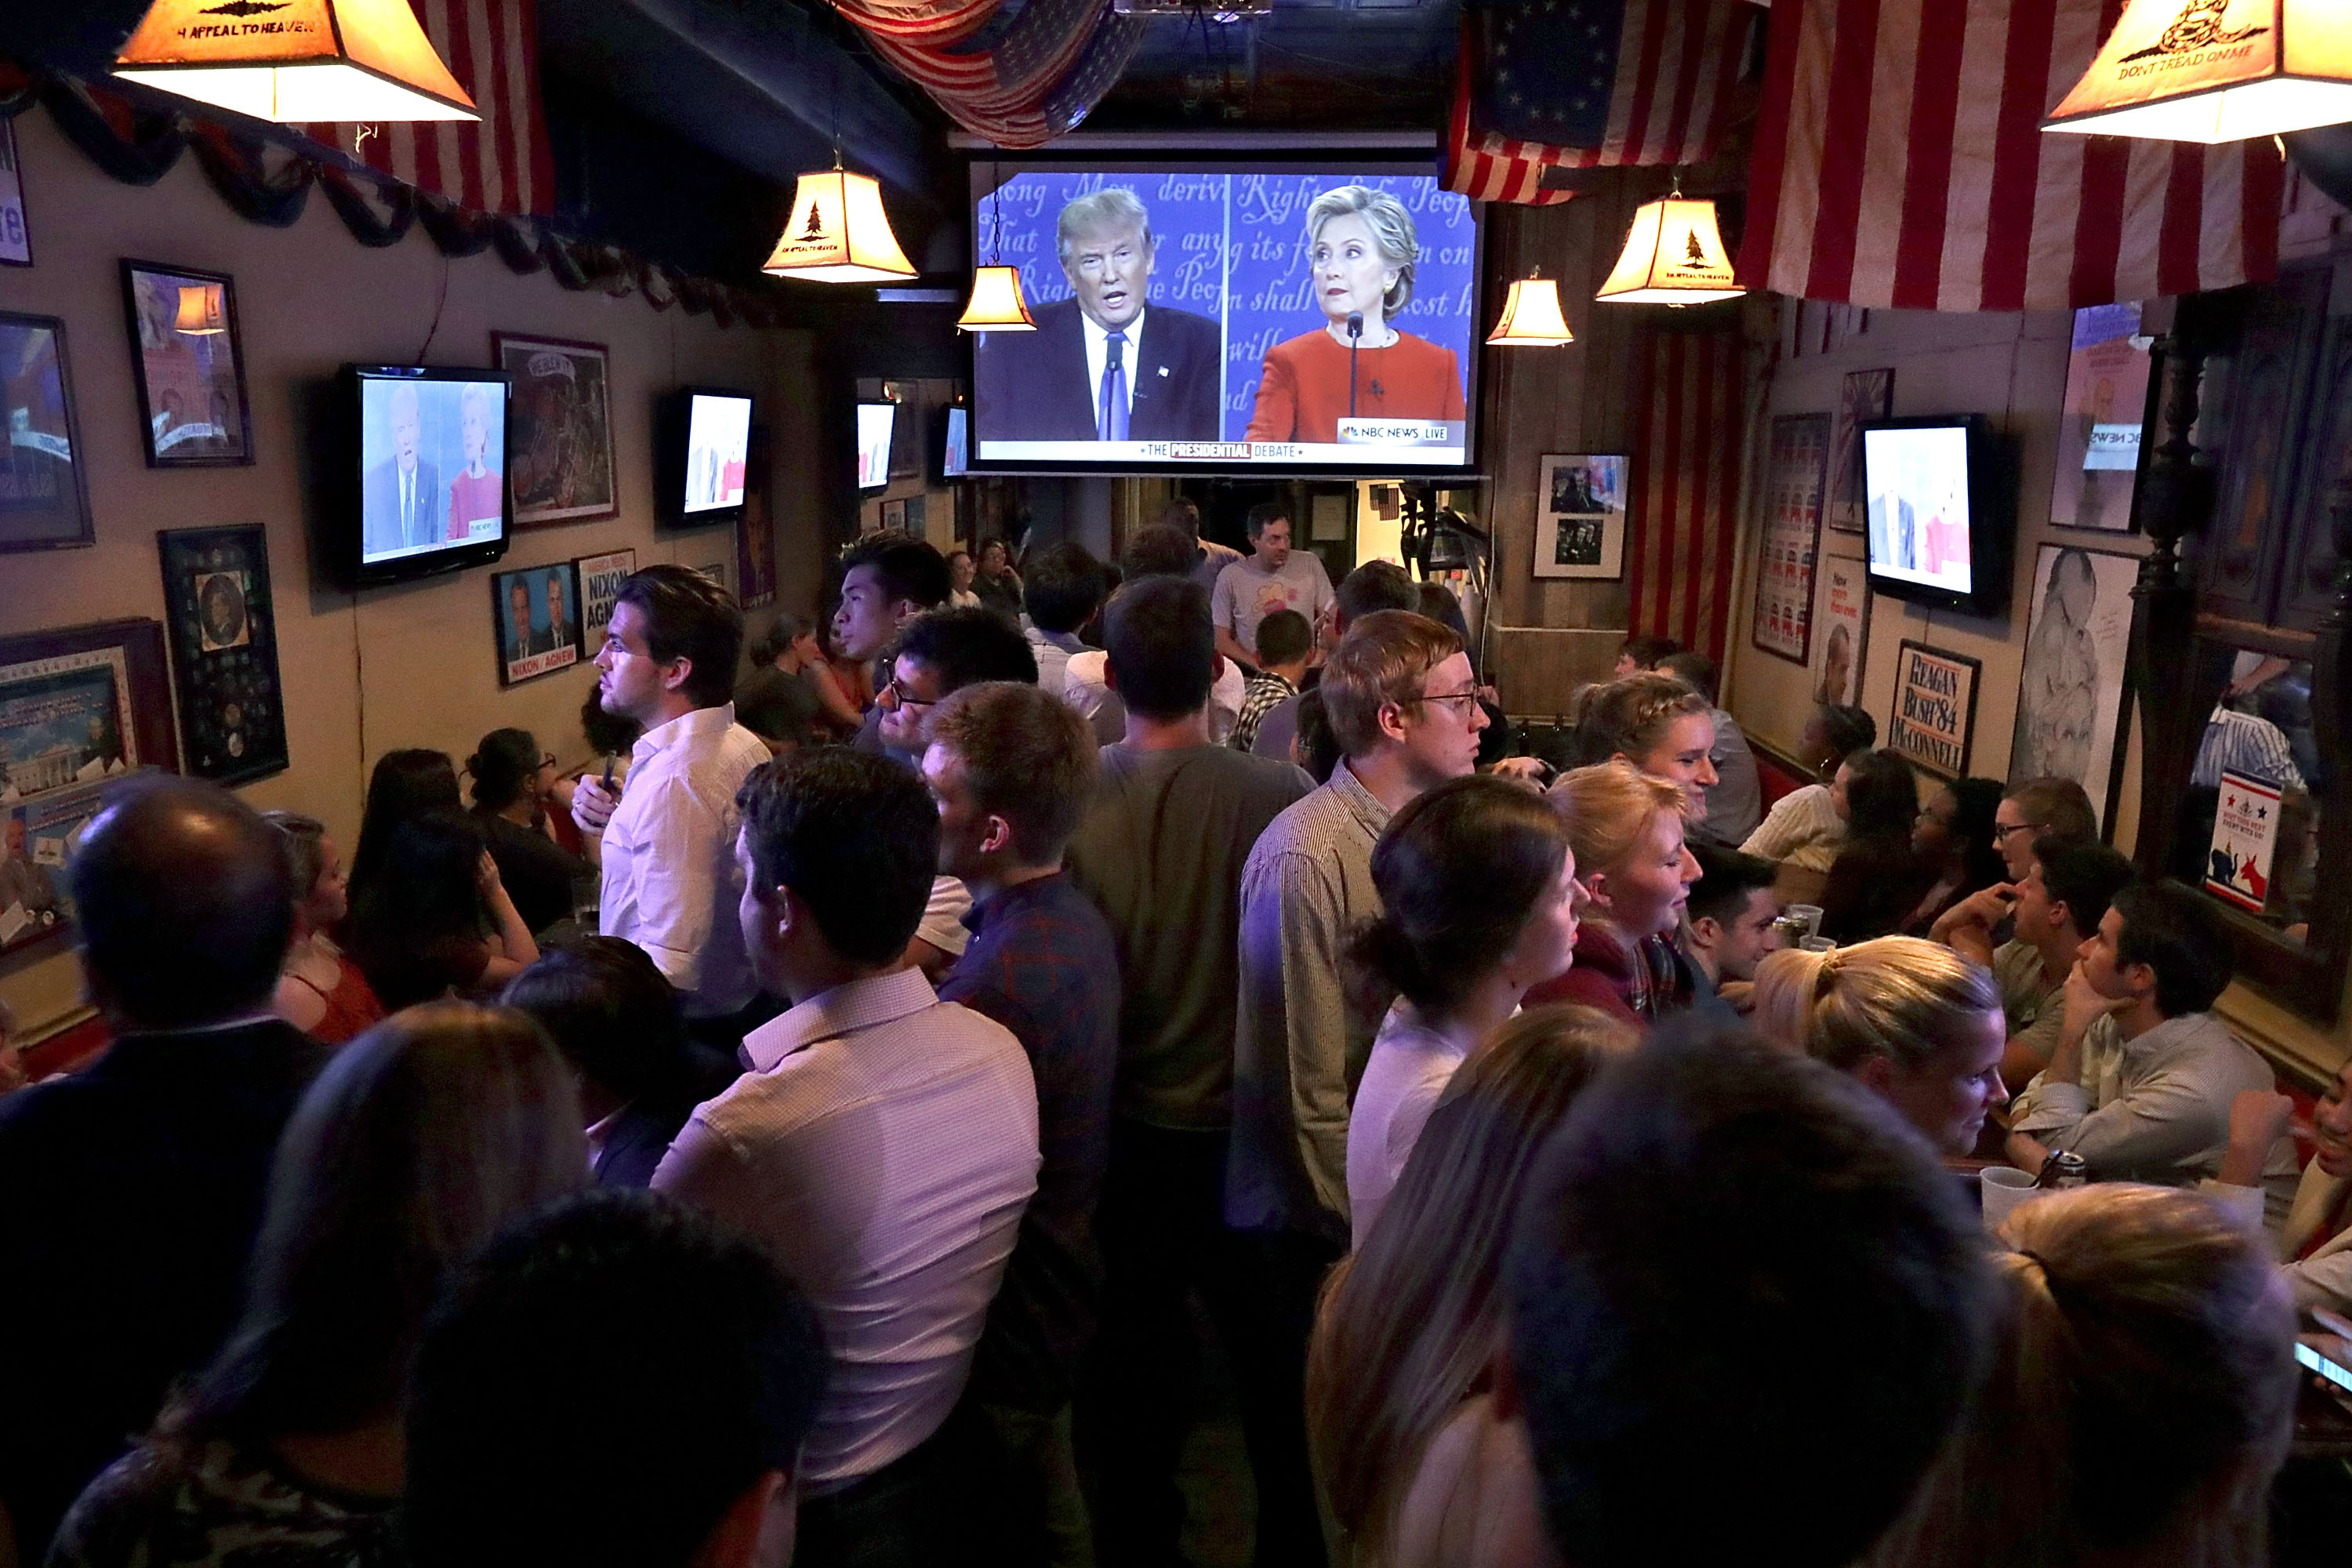 Presidential Debate Watch Party Held In Washington DC